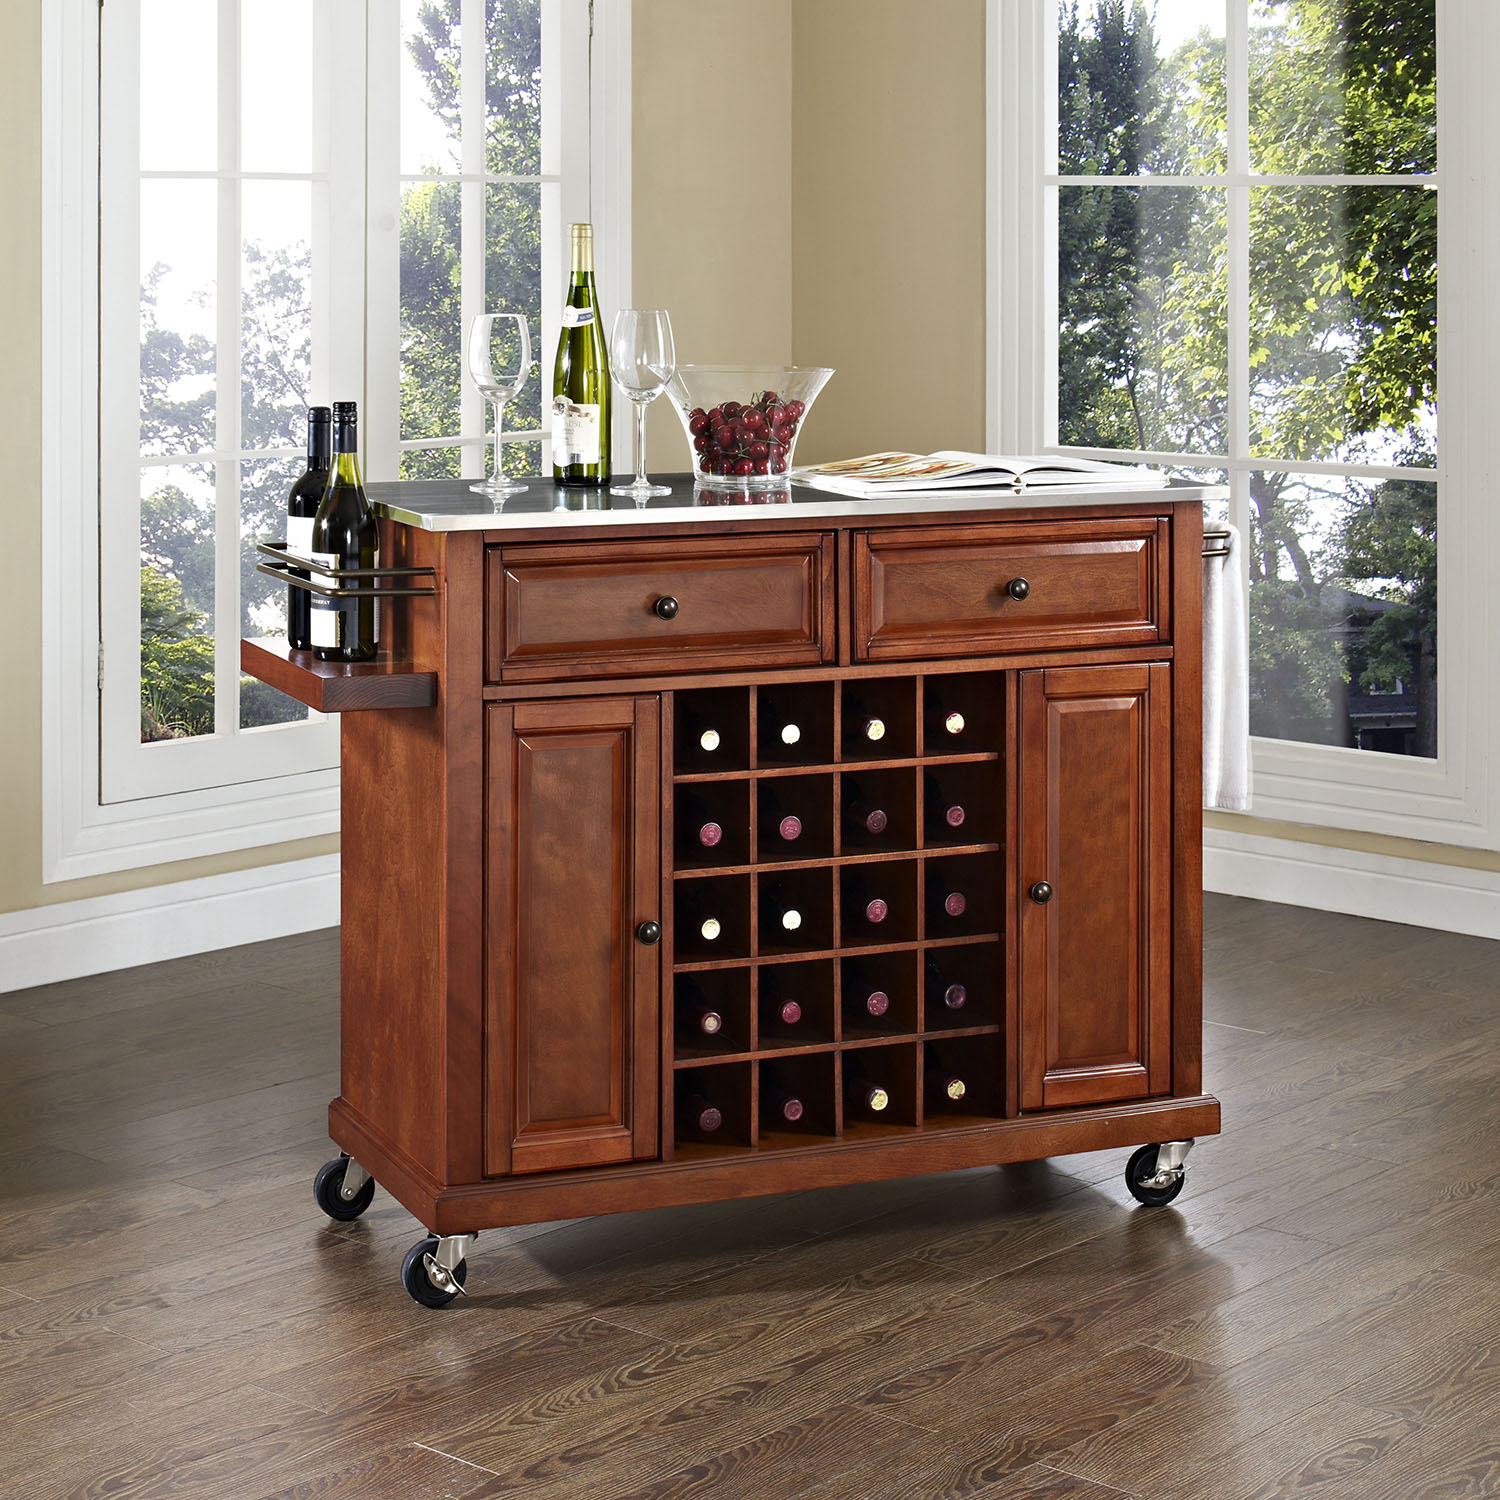 Stainless Steel Top Wine Cart - Classic Cherry - CROS-KF31002ECH